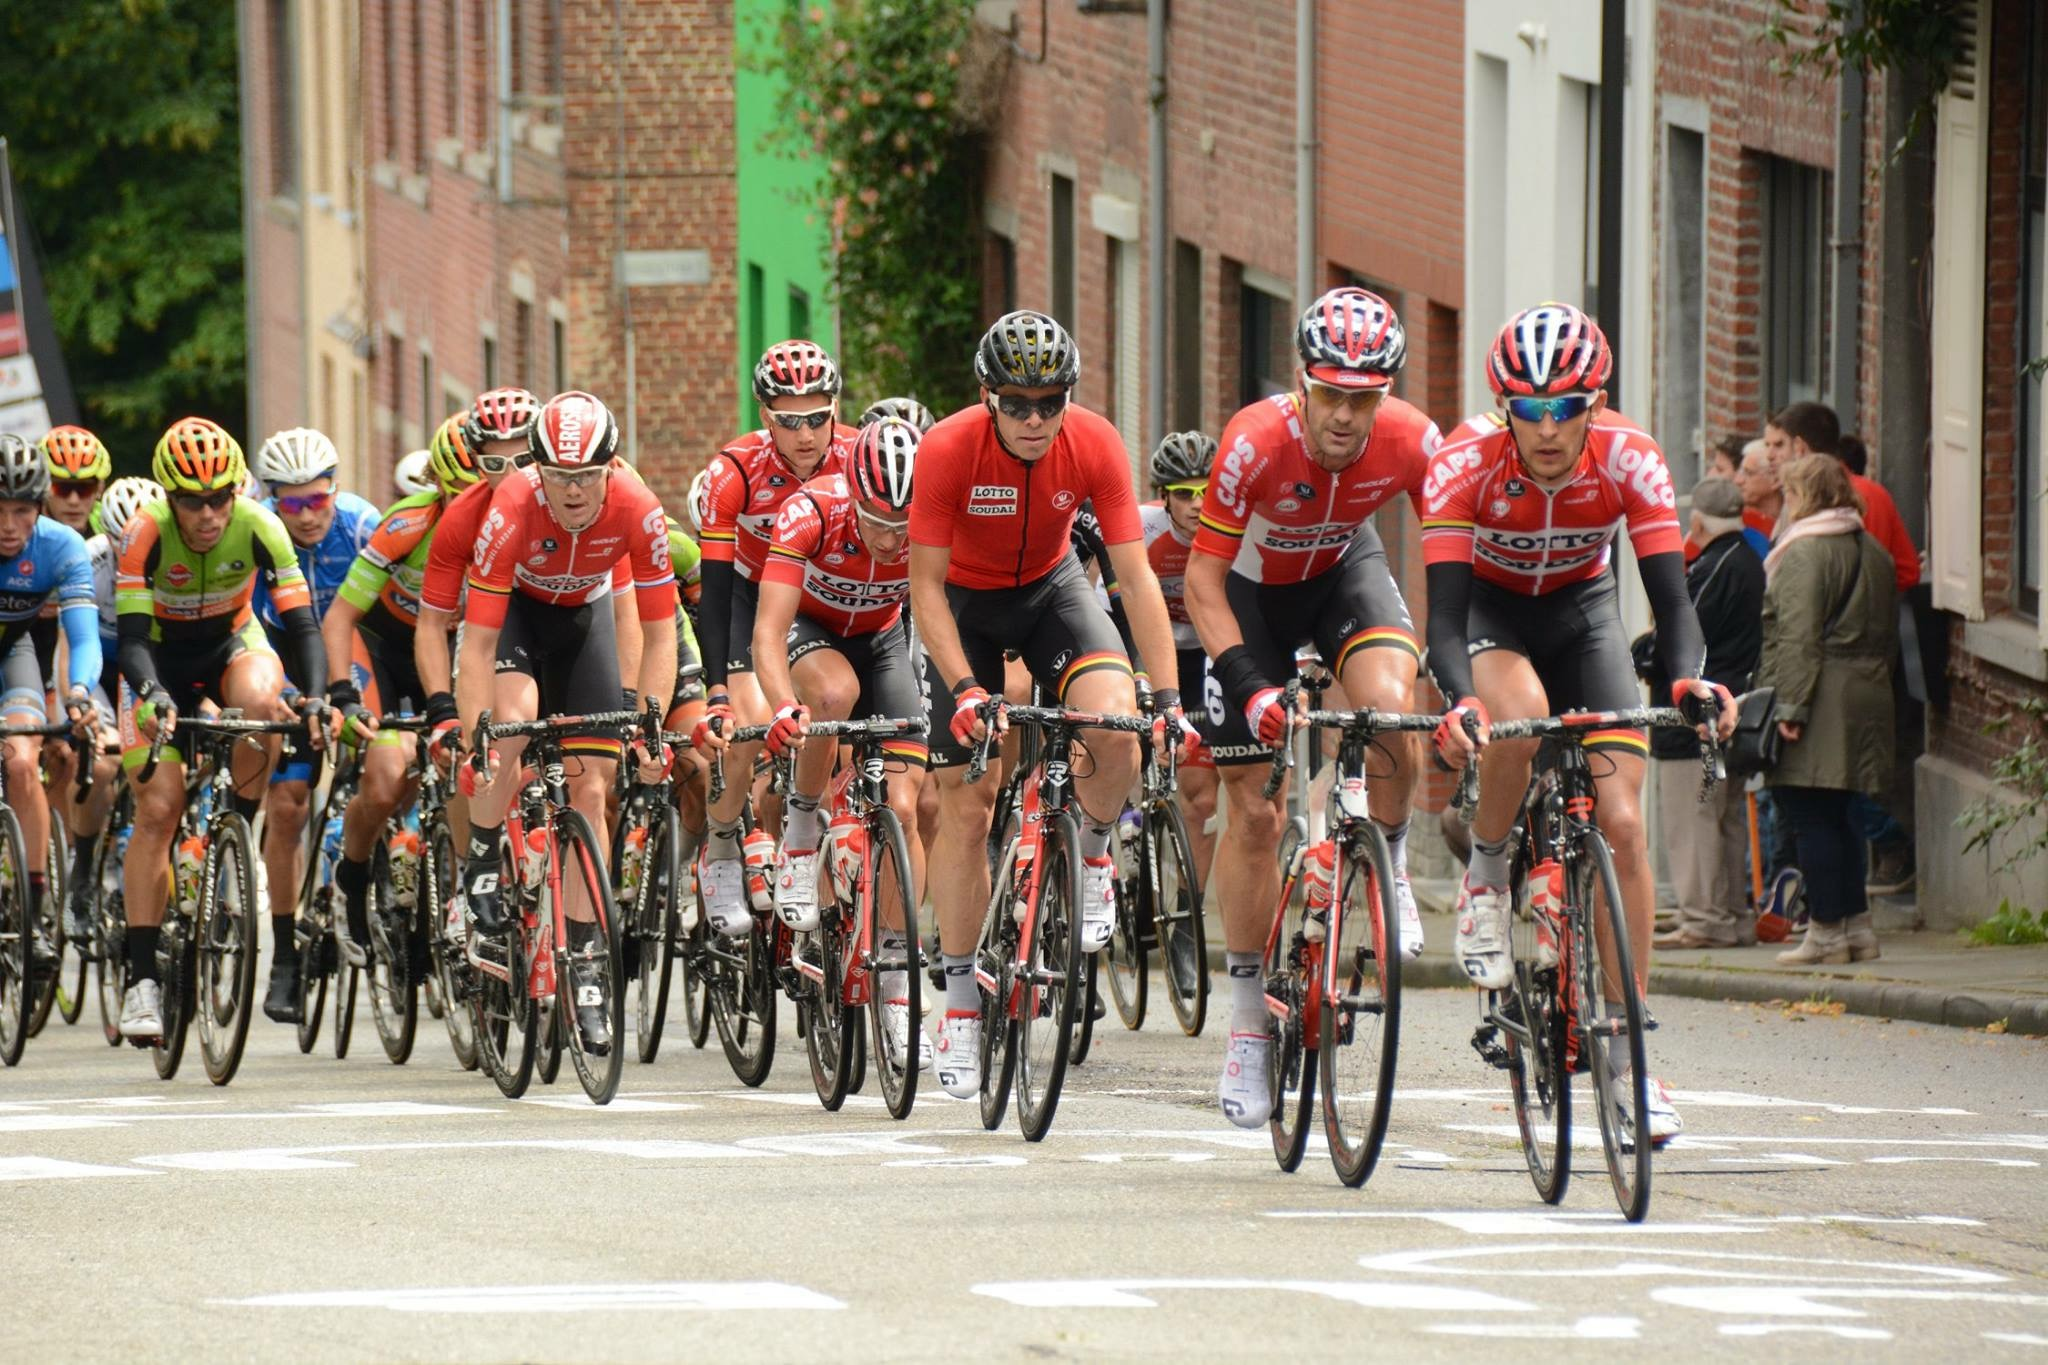 James Shaw racing in Leuven with Lotto-Soudal